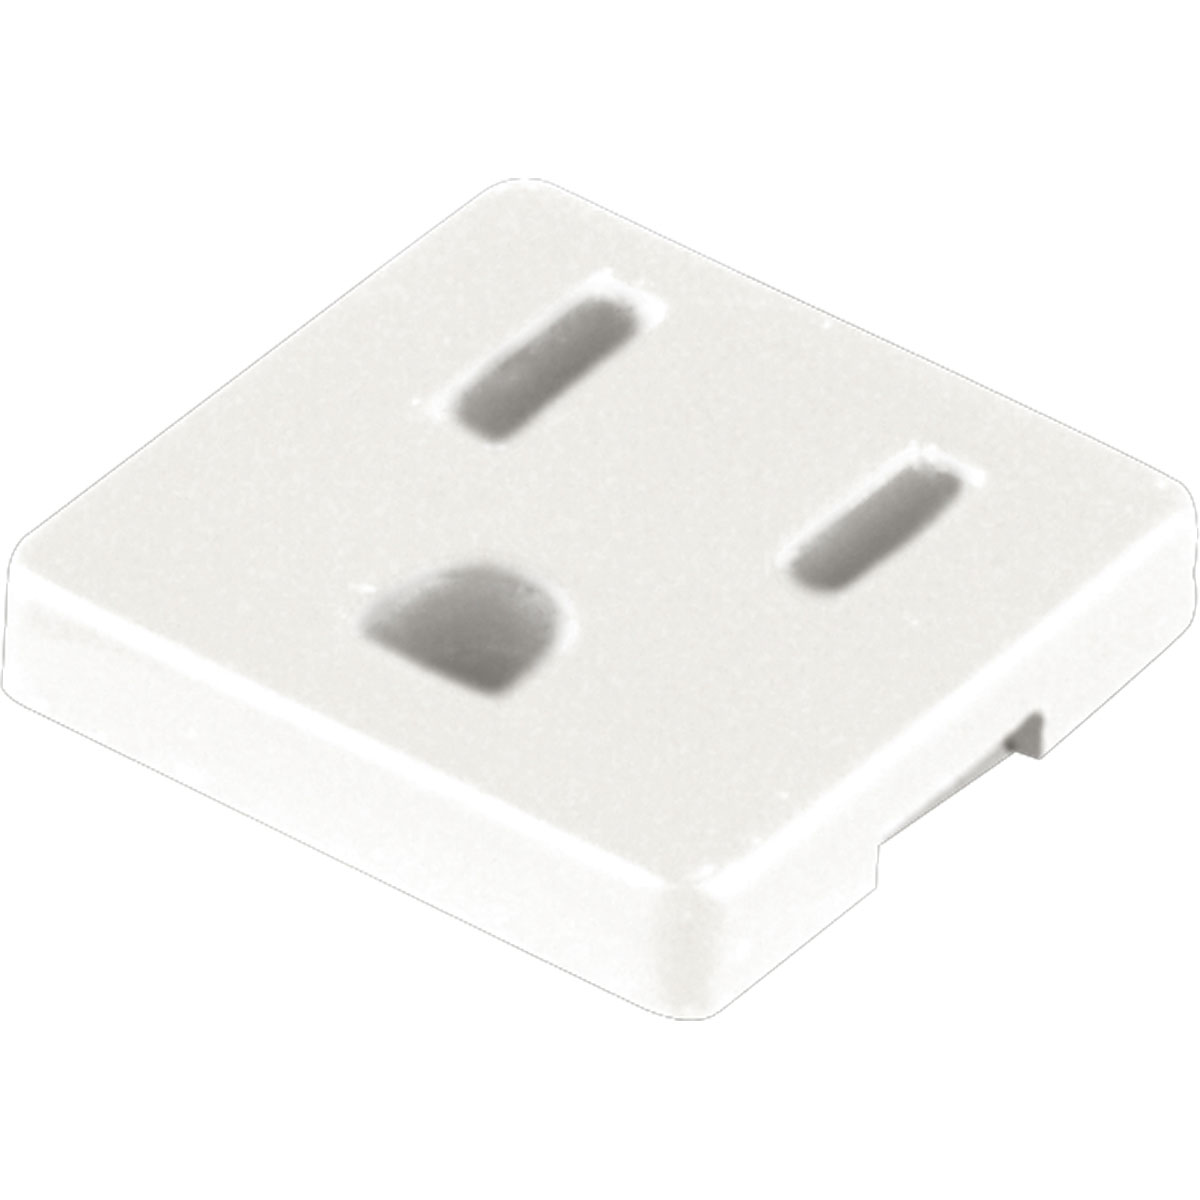 Progress Lighting (P8608-30) Grounded Convenience Outlet Undercabinet Accessory